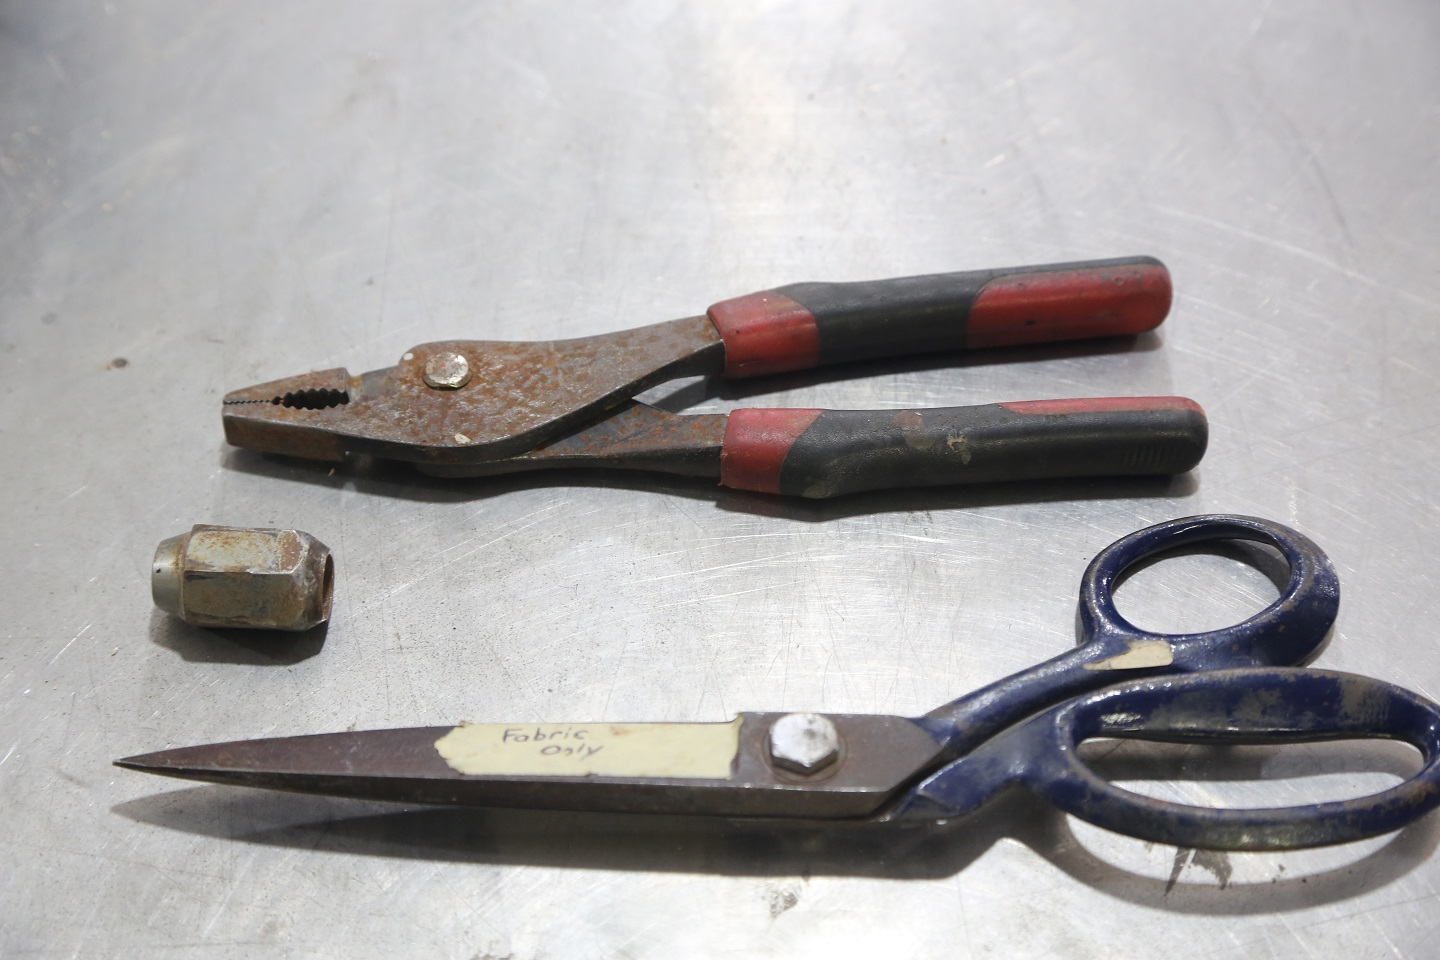 When you have rusty tools and parts, their performance is reduced. Pliers stick, and scissors leave rust dust all over upholstery. Time to fix it.